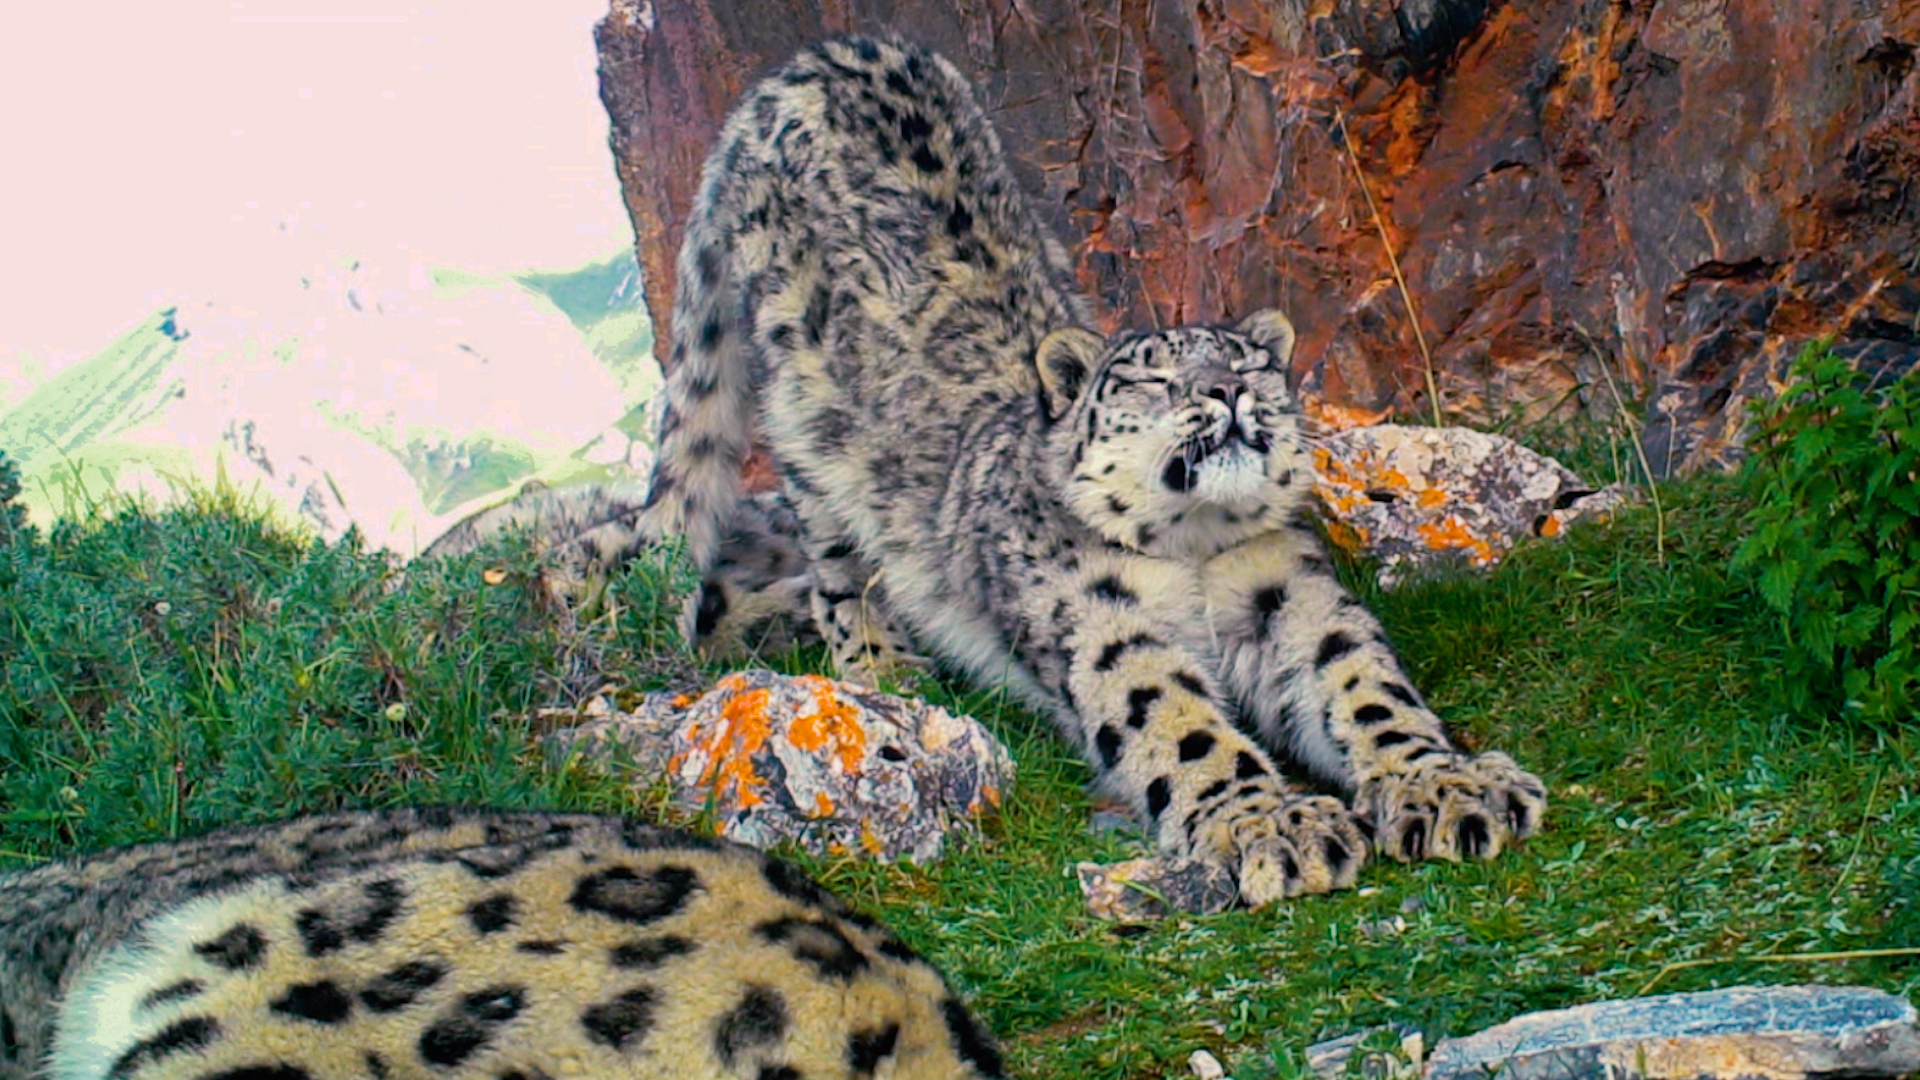 Rare treat: 3 snow leopards frolic and snuggle on camera